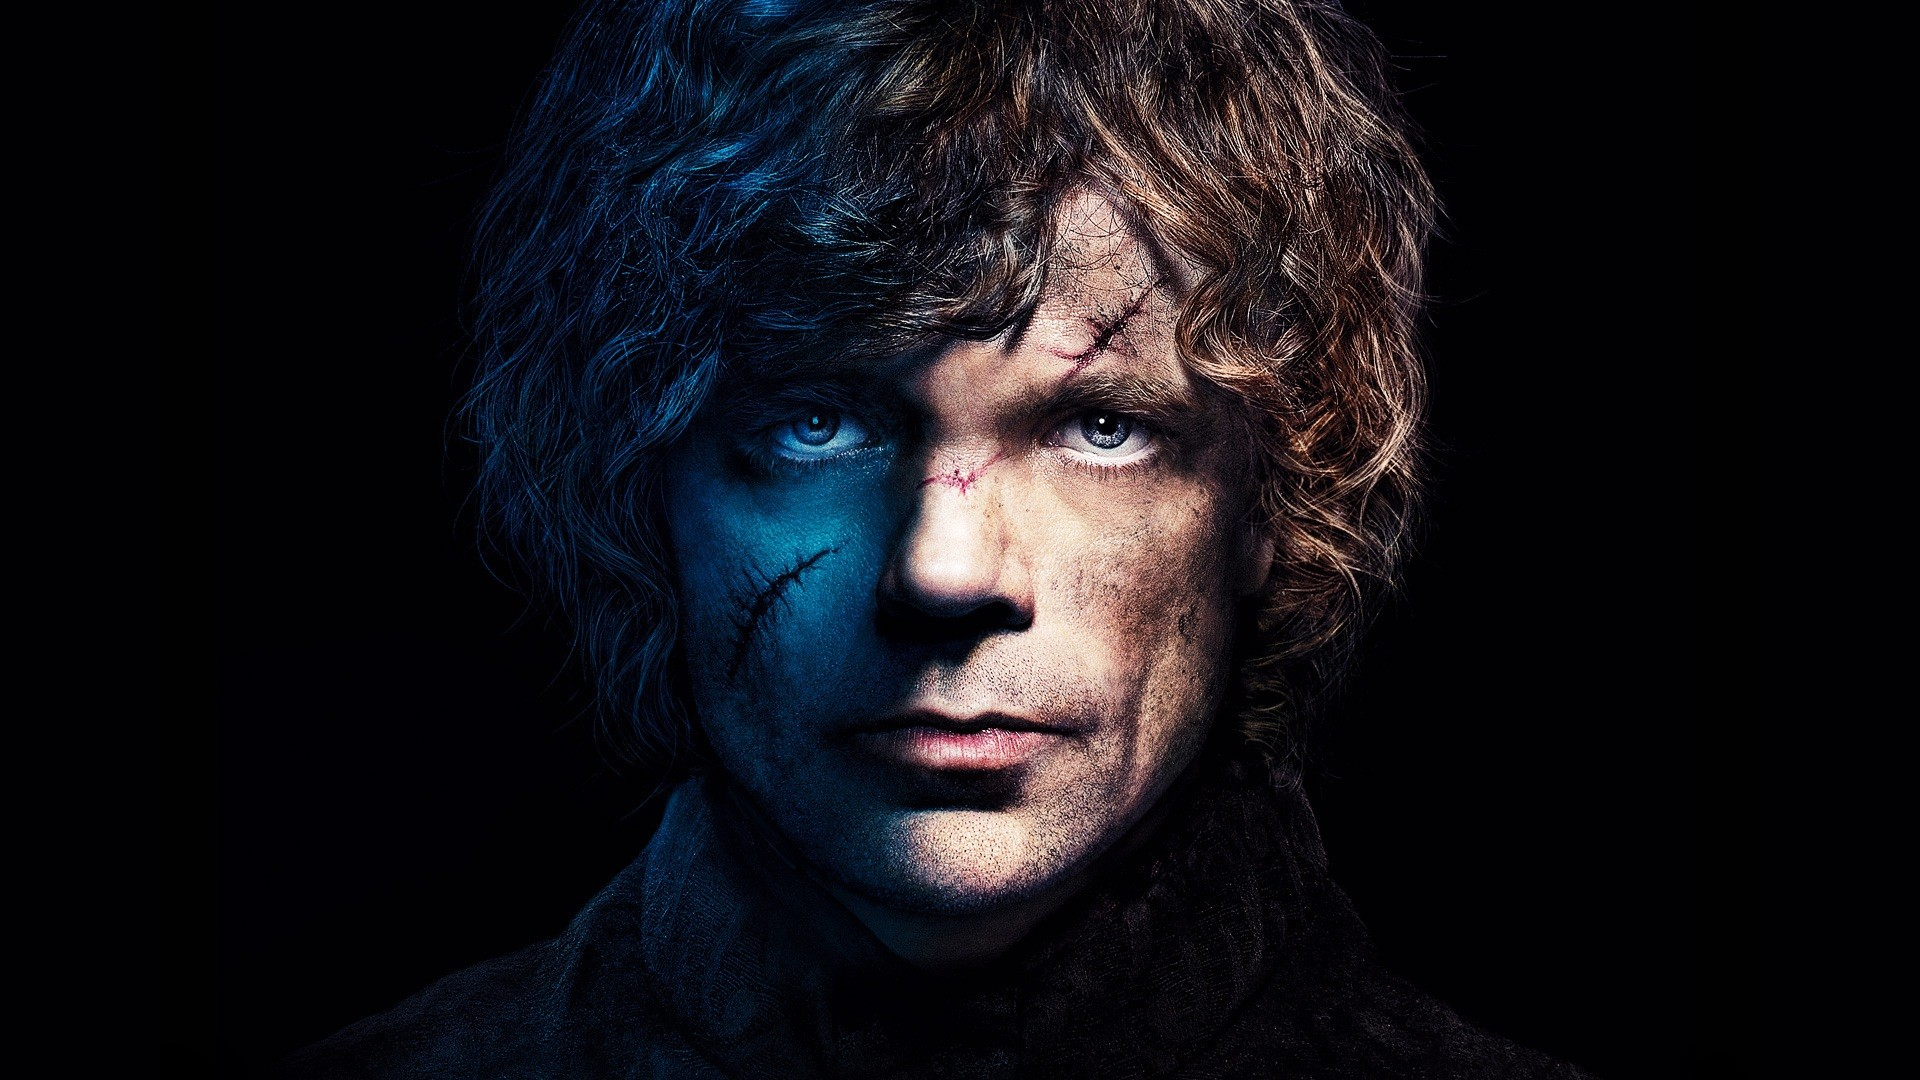 1920x1080 Preview Wallpaper Game Of Thrones Peter Dinklage Tyrion Lannister